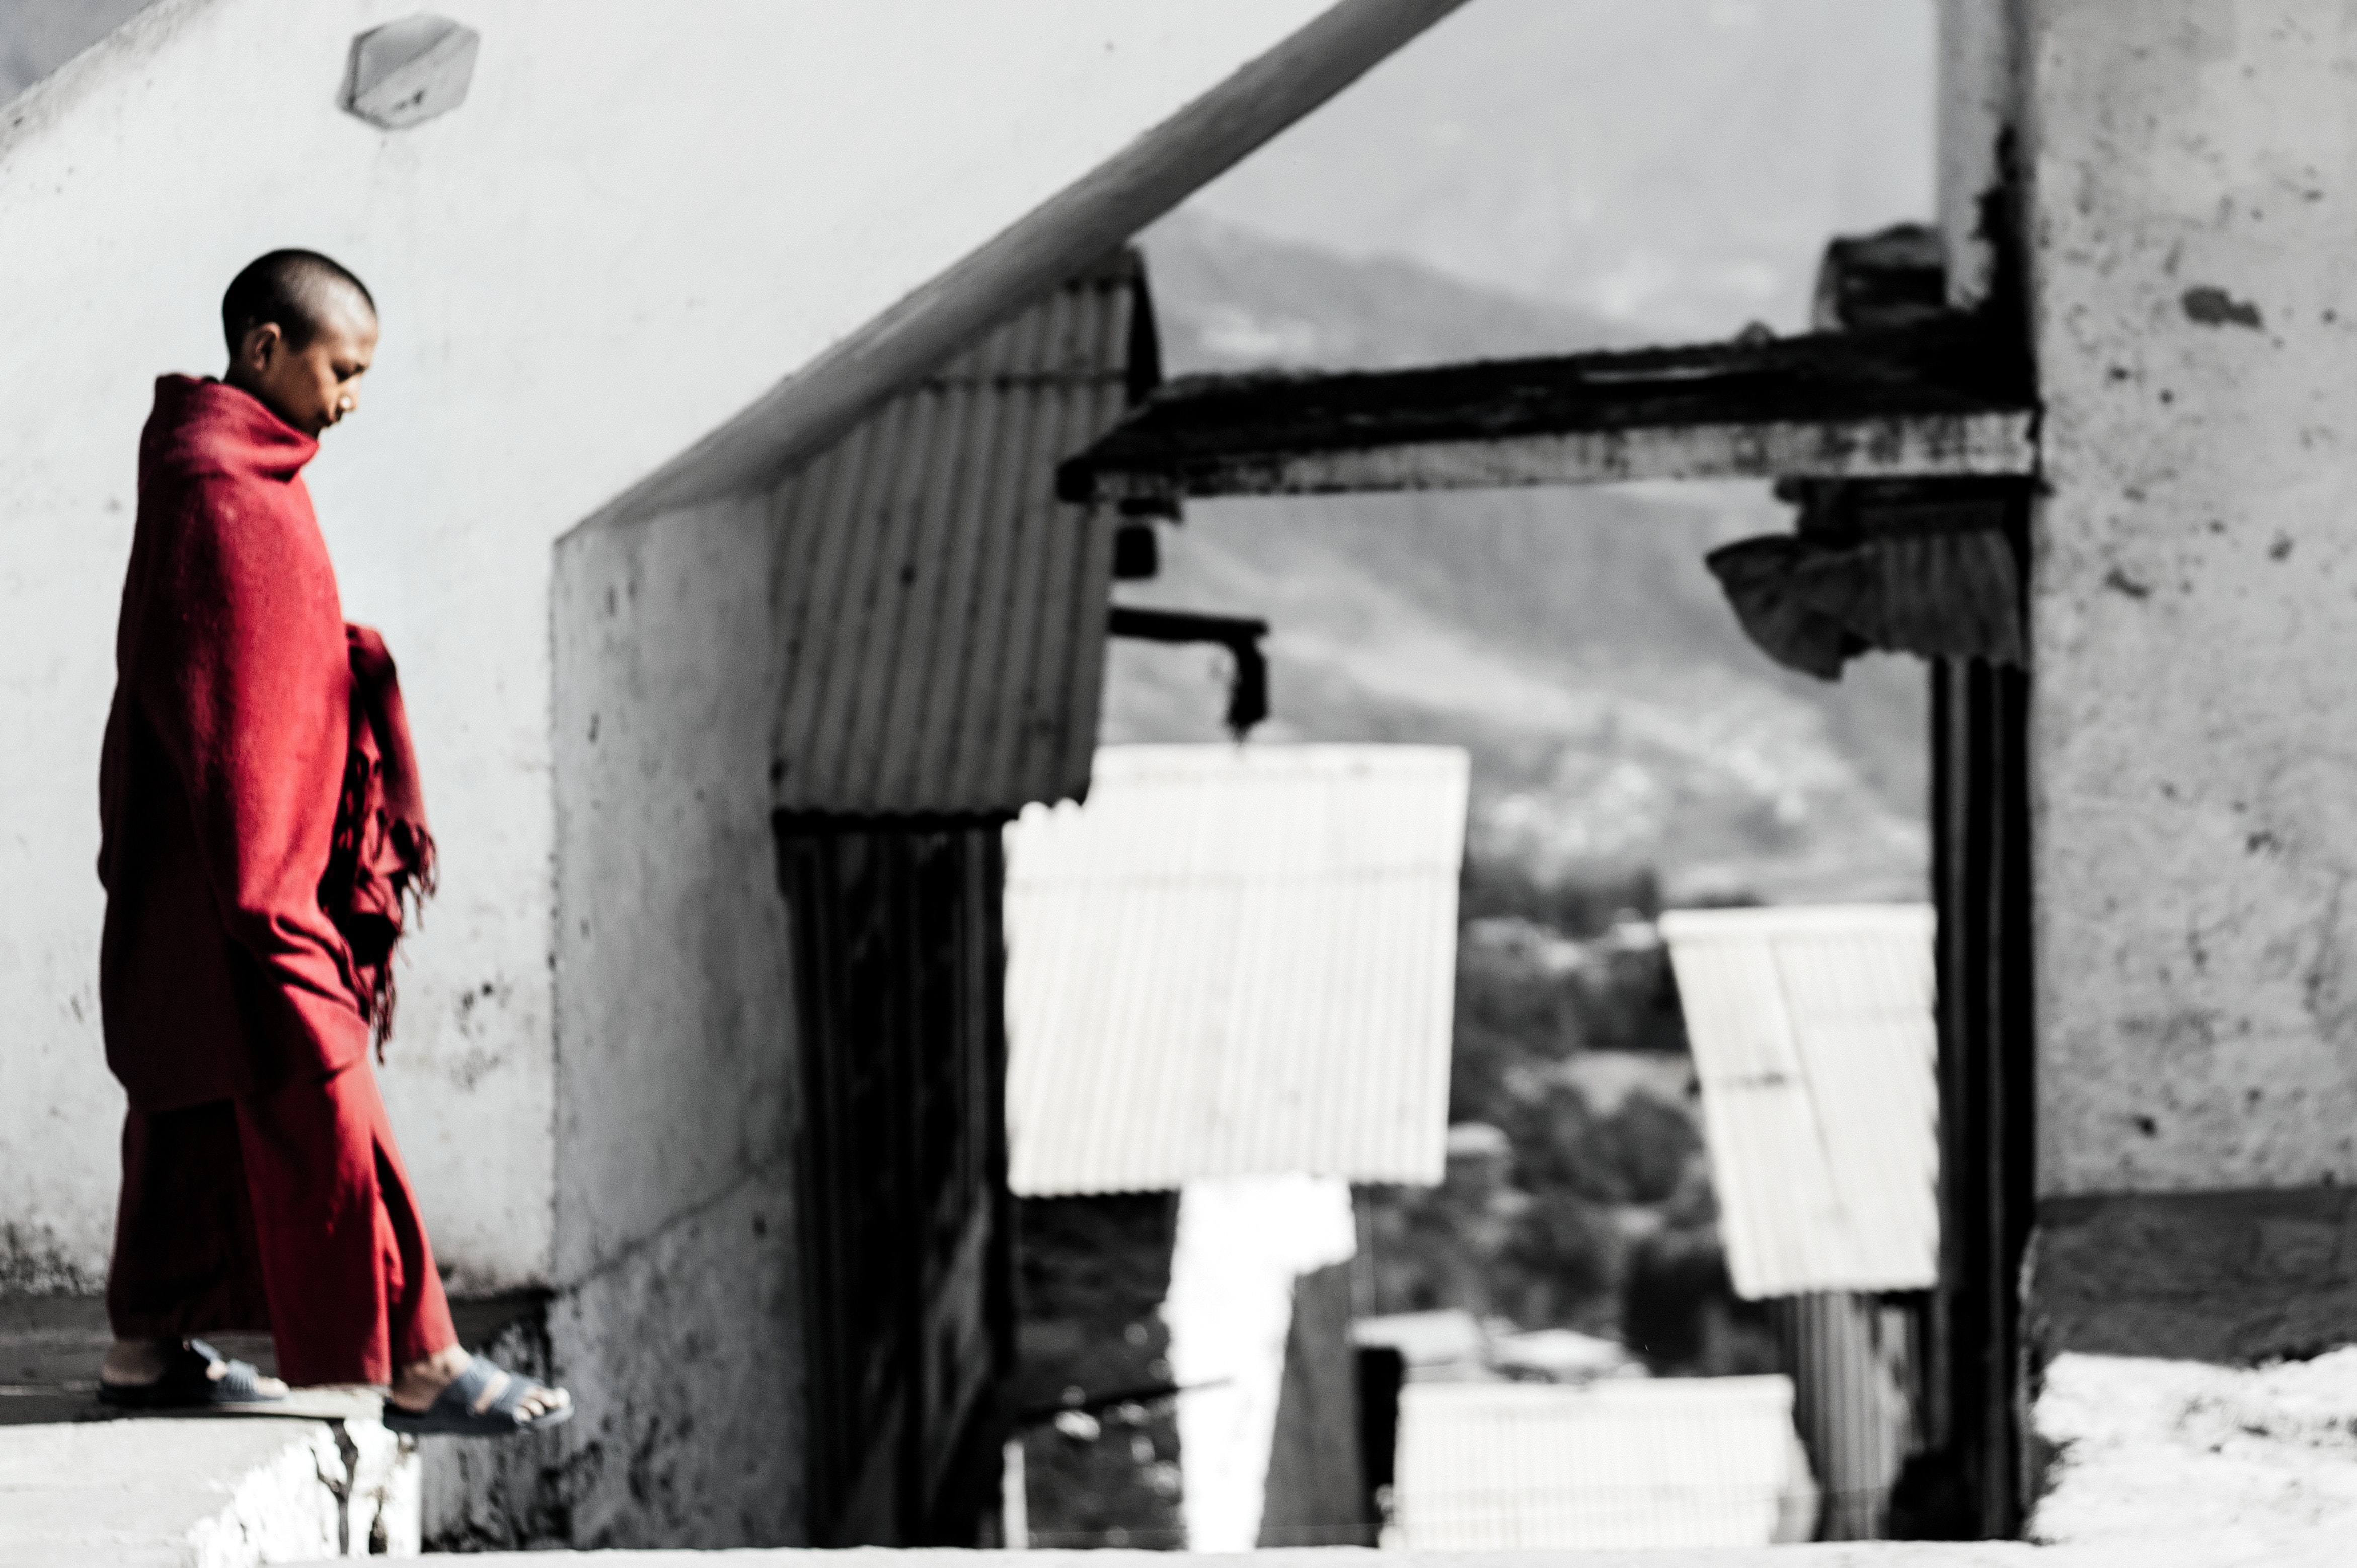 selective color photography of man standing on concrete surface